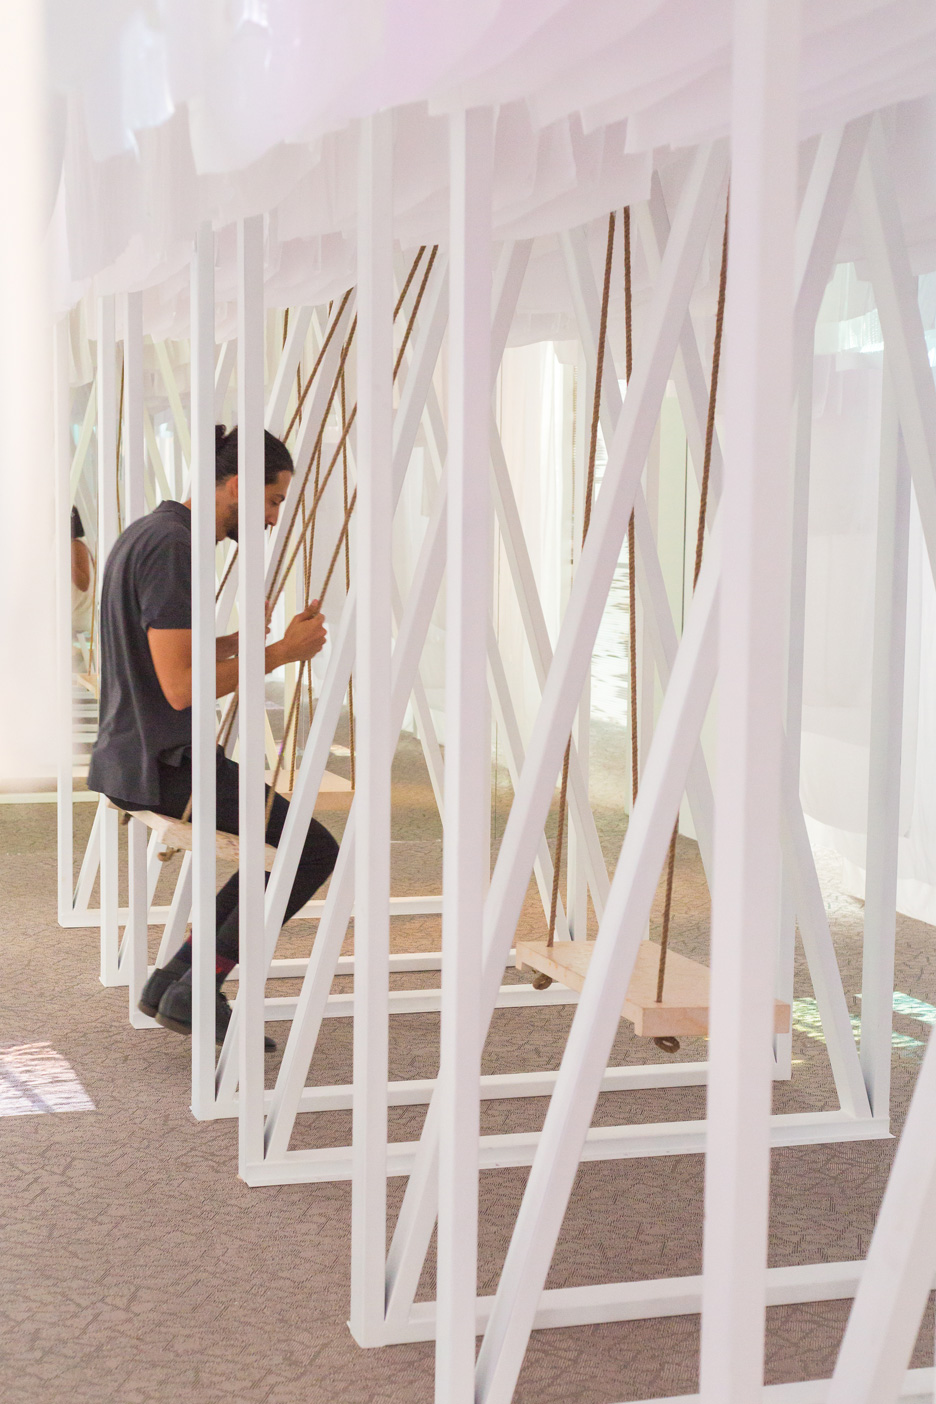 Jordan Abwab pavilion at Dubai Design Week 2015